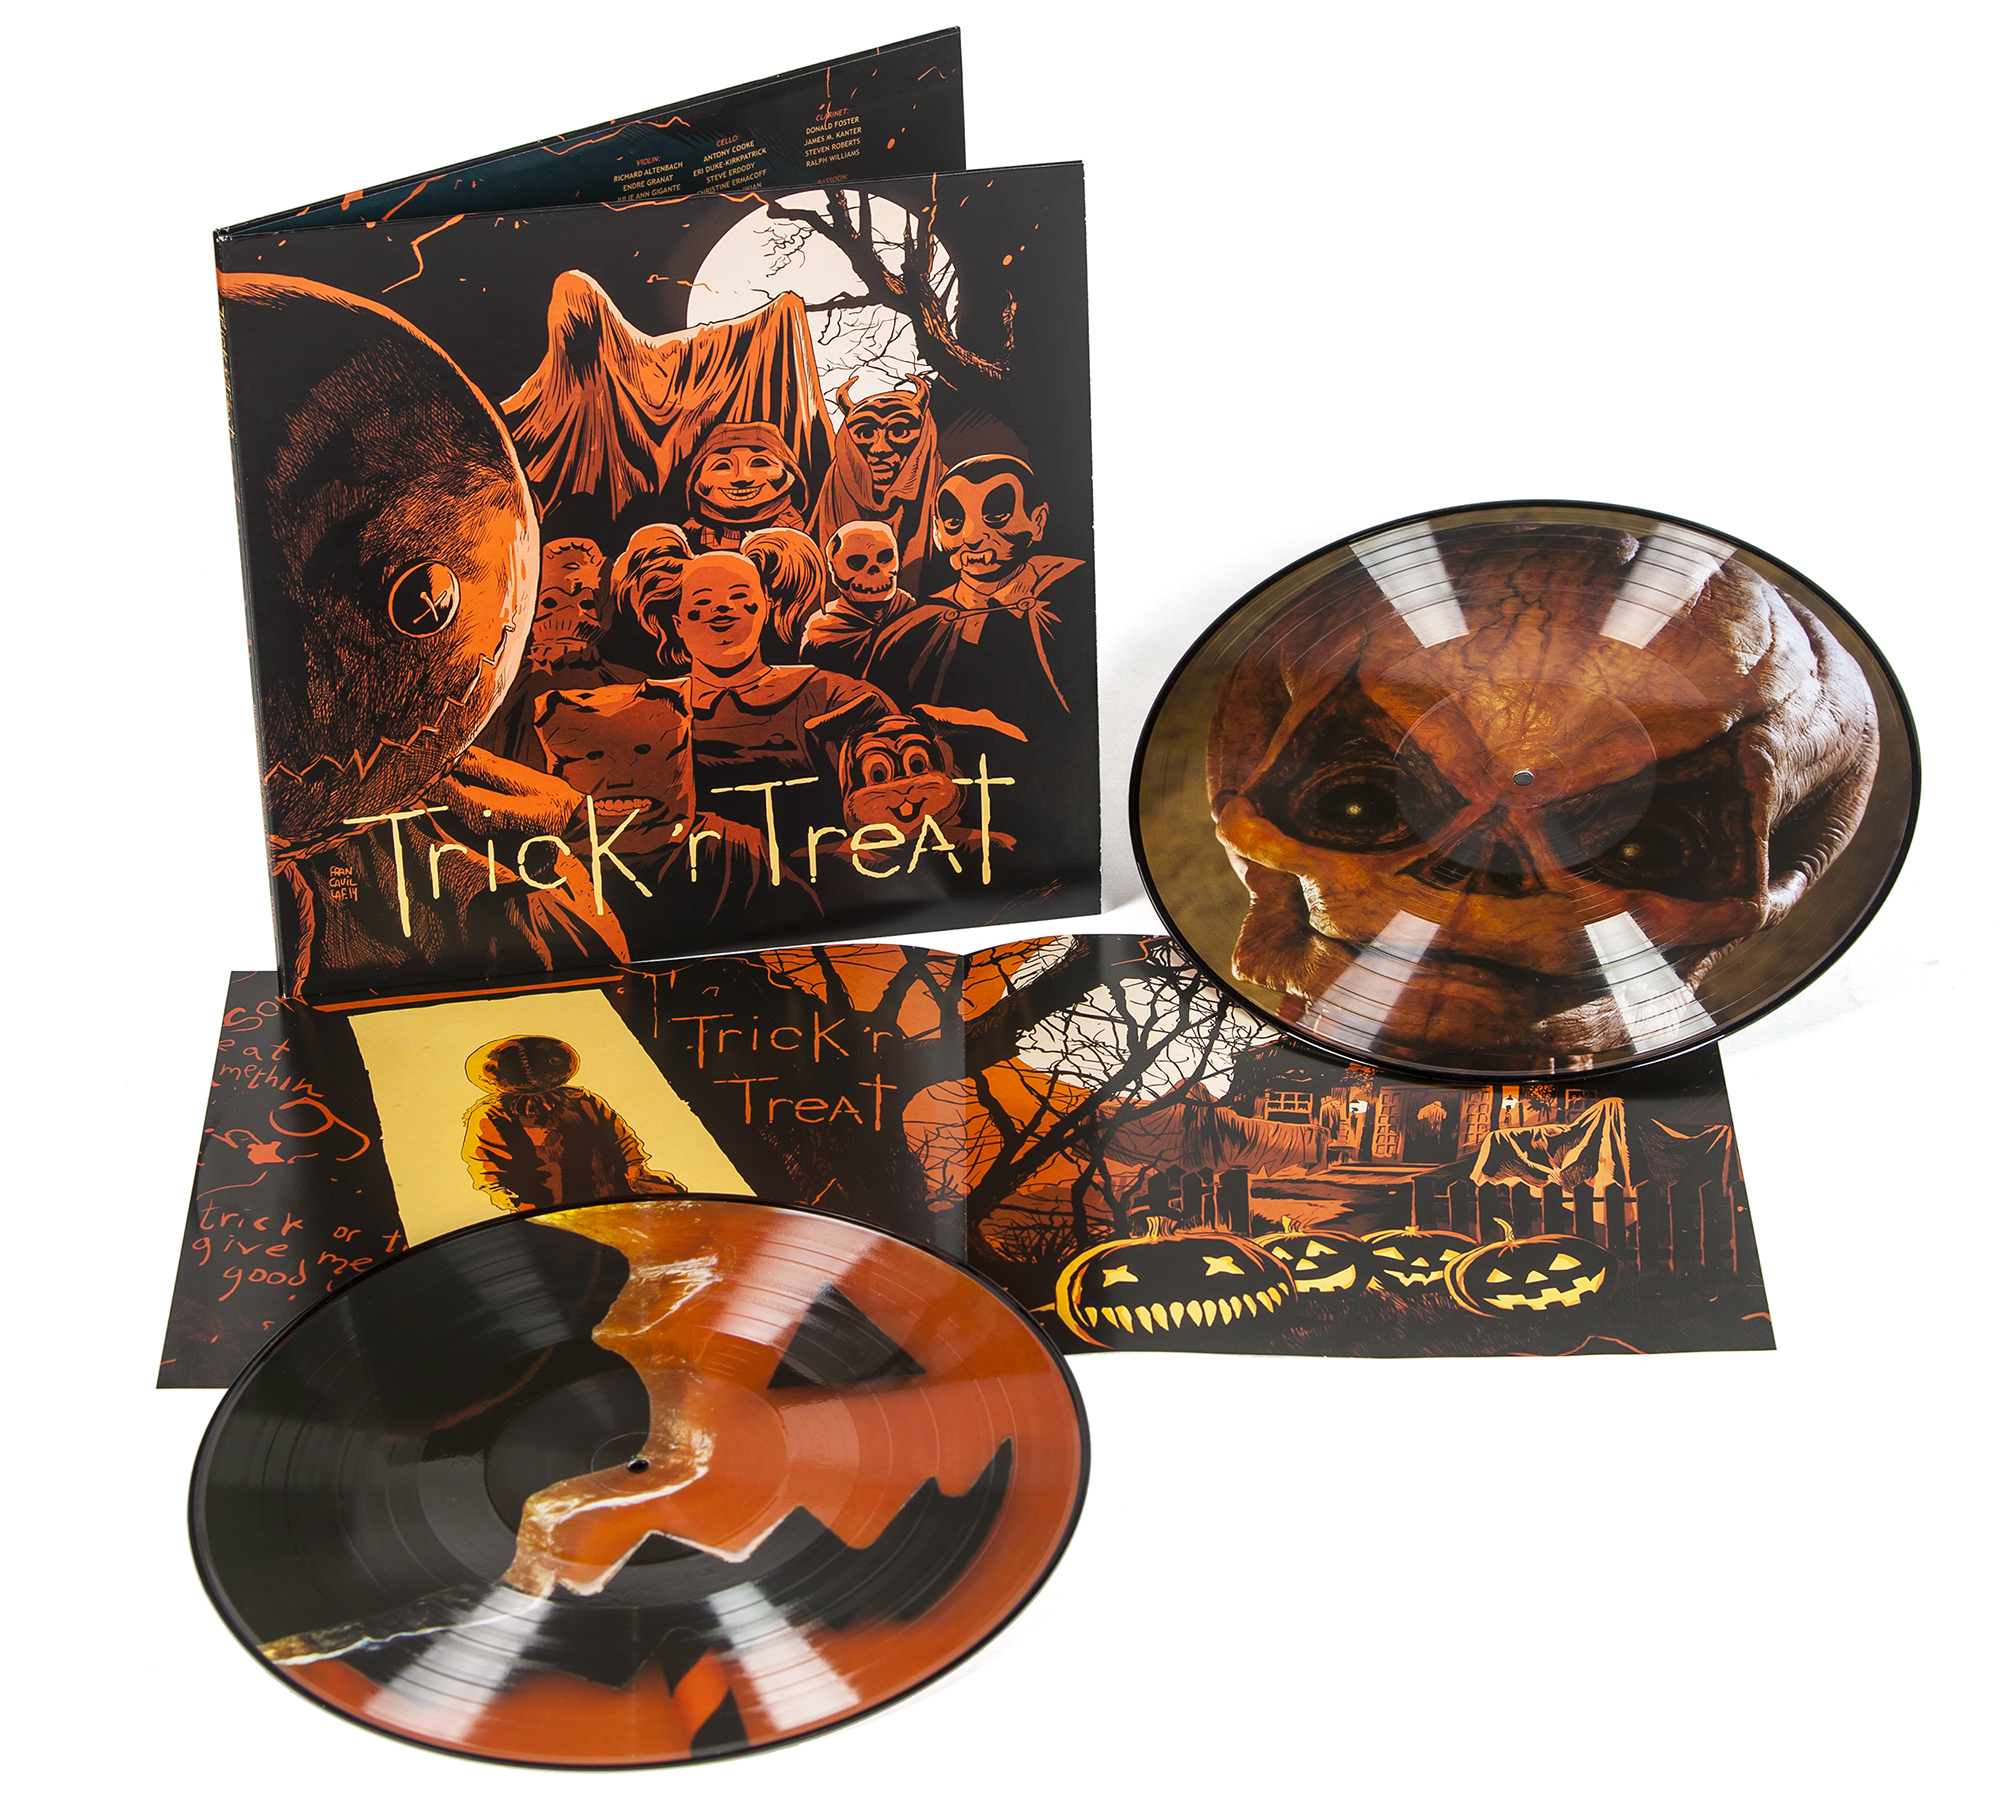 Trick 'R Treat (Original 2007 Score)